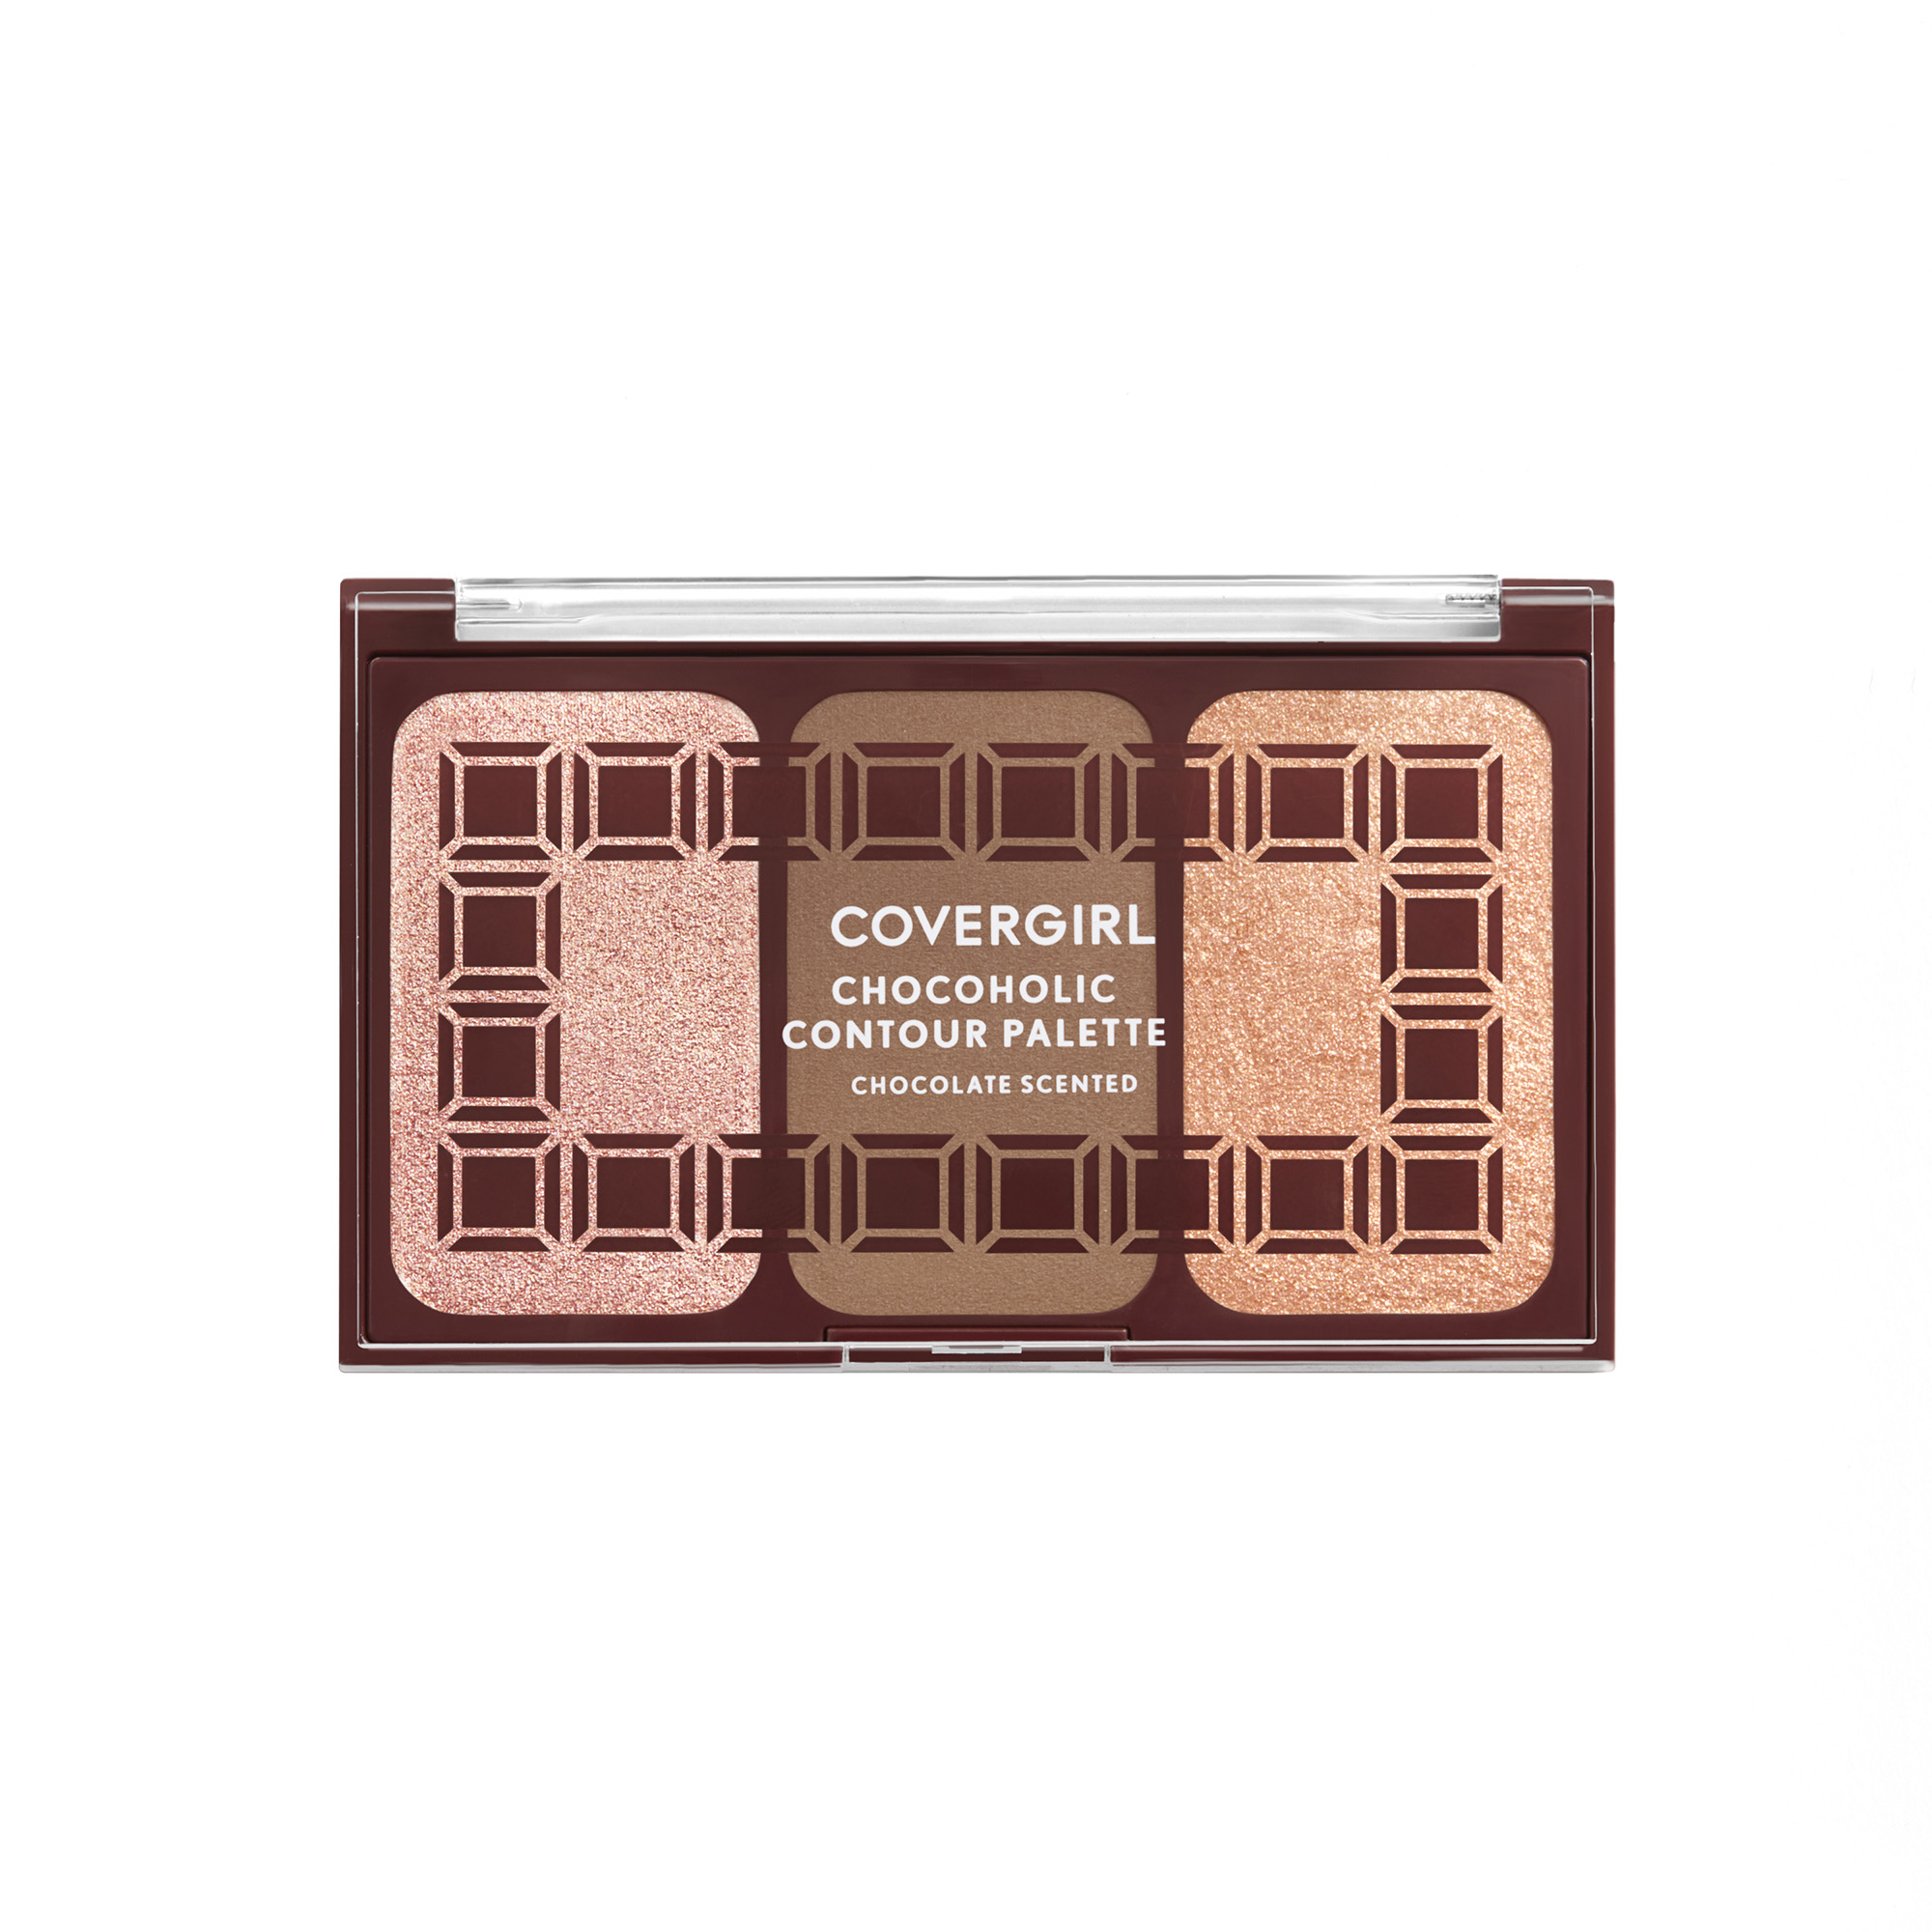 Covergirl Chocolate Scented Collection, Chocoholic Contour Palette, 140 by Cover Girl